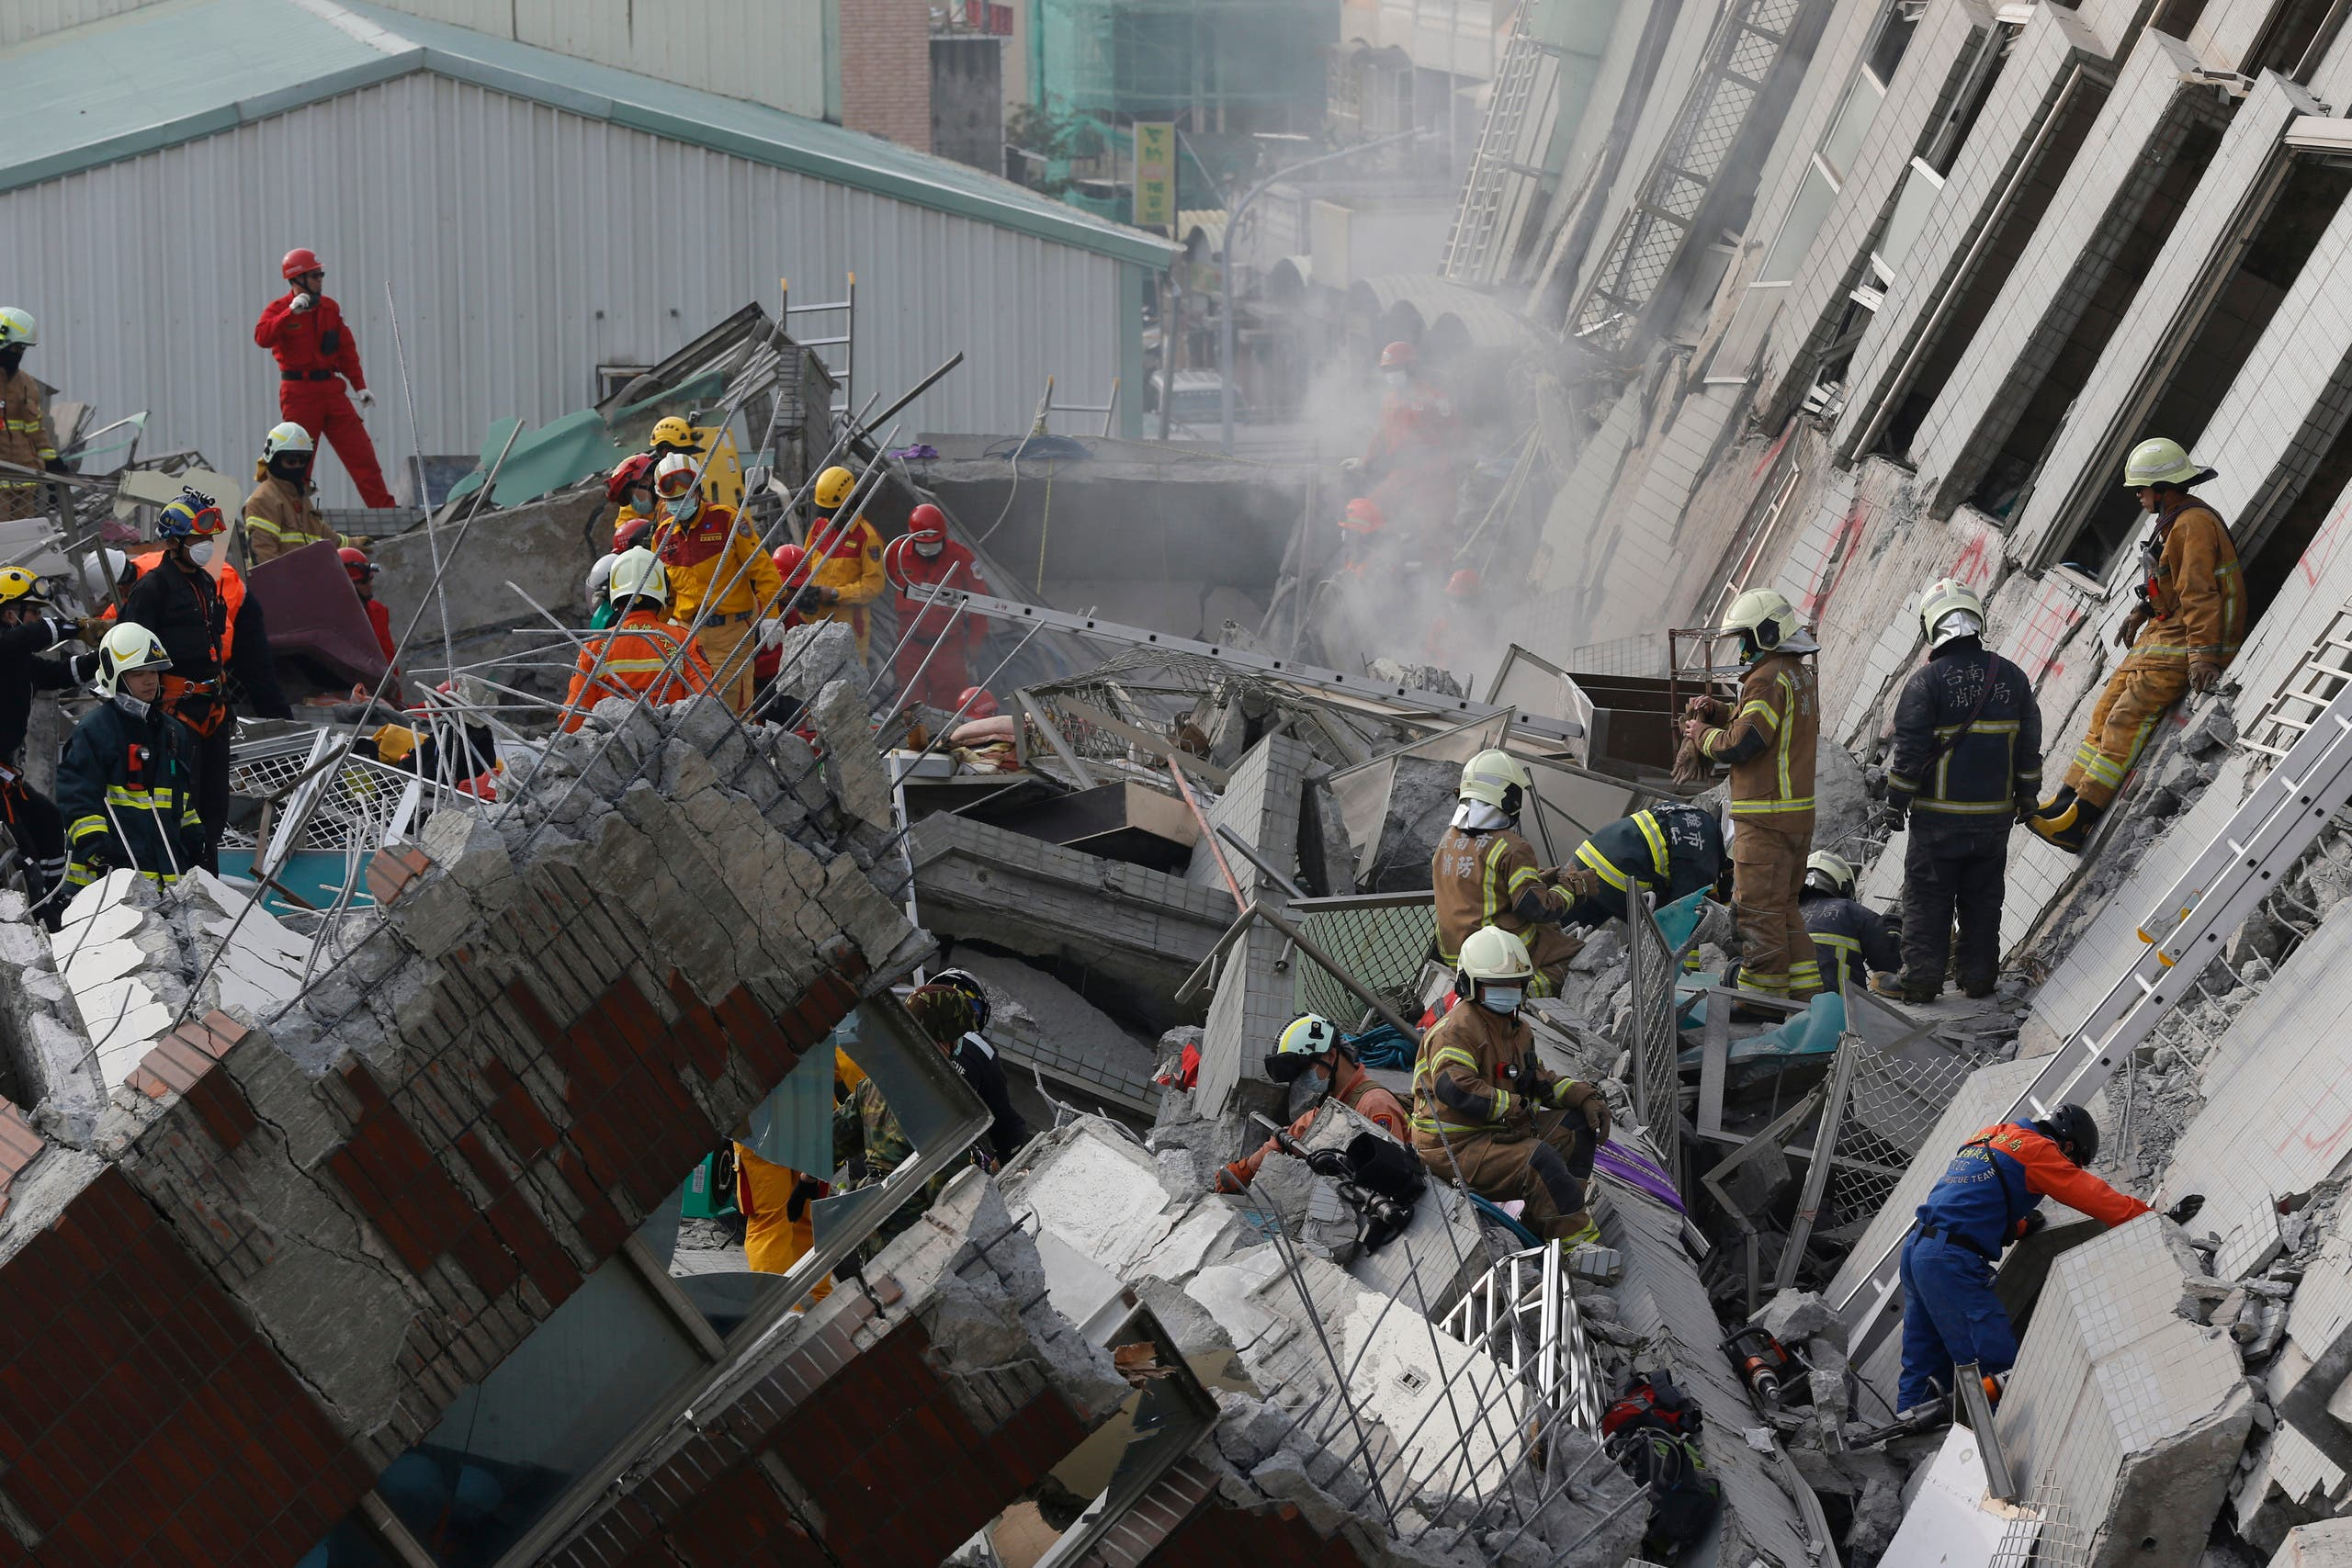 Rescue teams continue to search for the missing in a collapsed building, after an early morning earthquake in Tainan, Taiwan, Saturday, Feb. 6, 2016.  AP